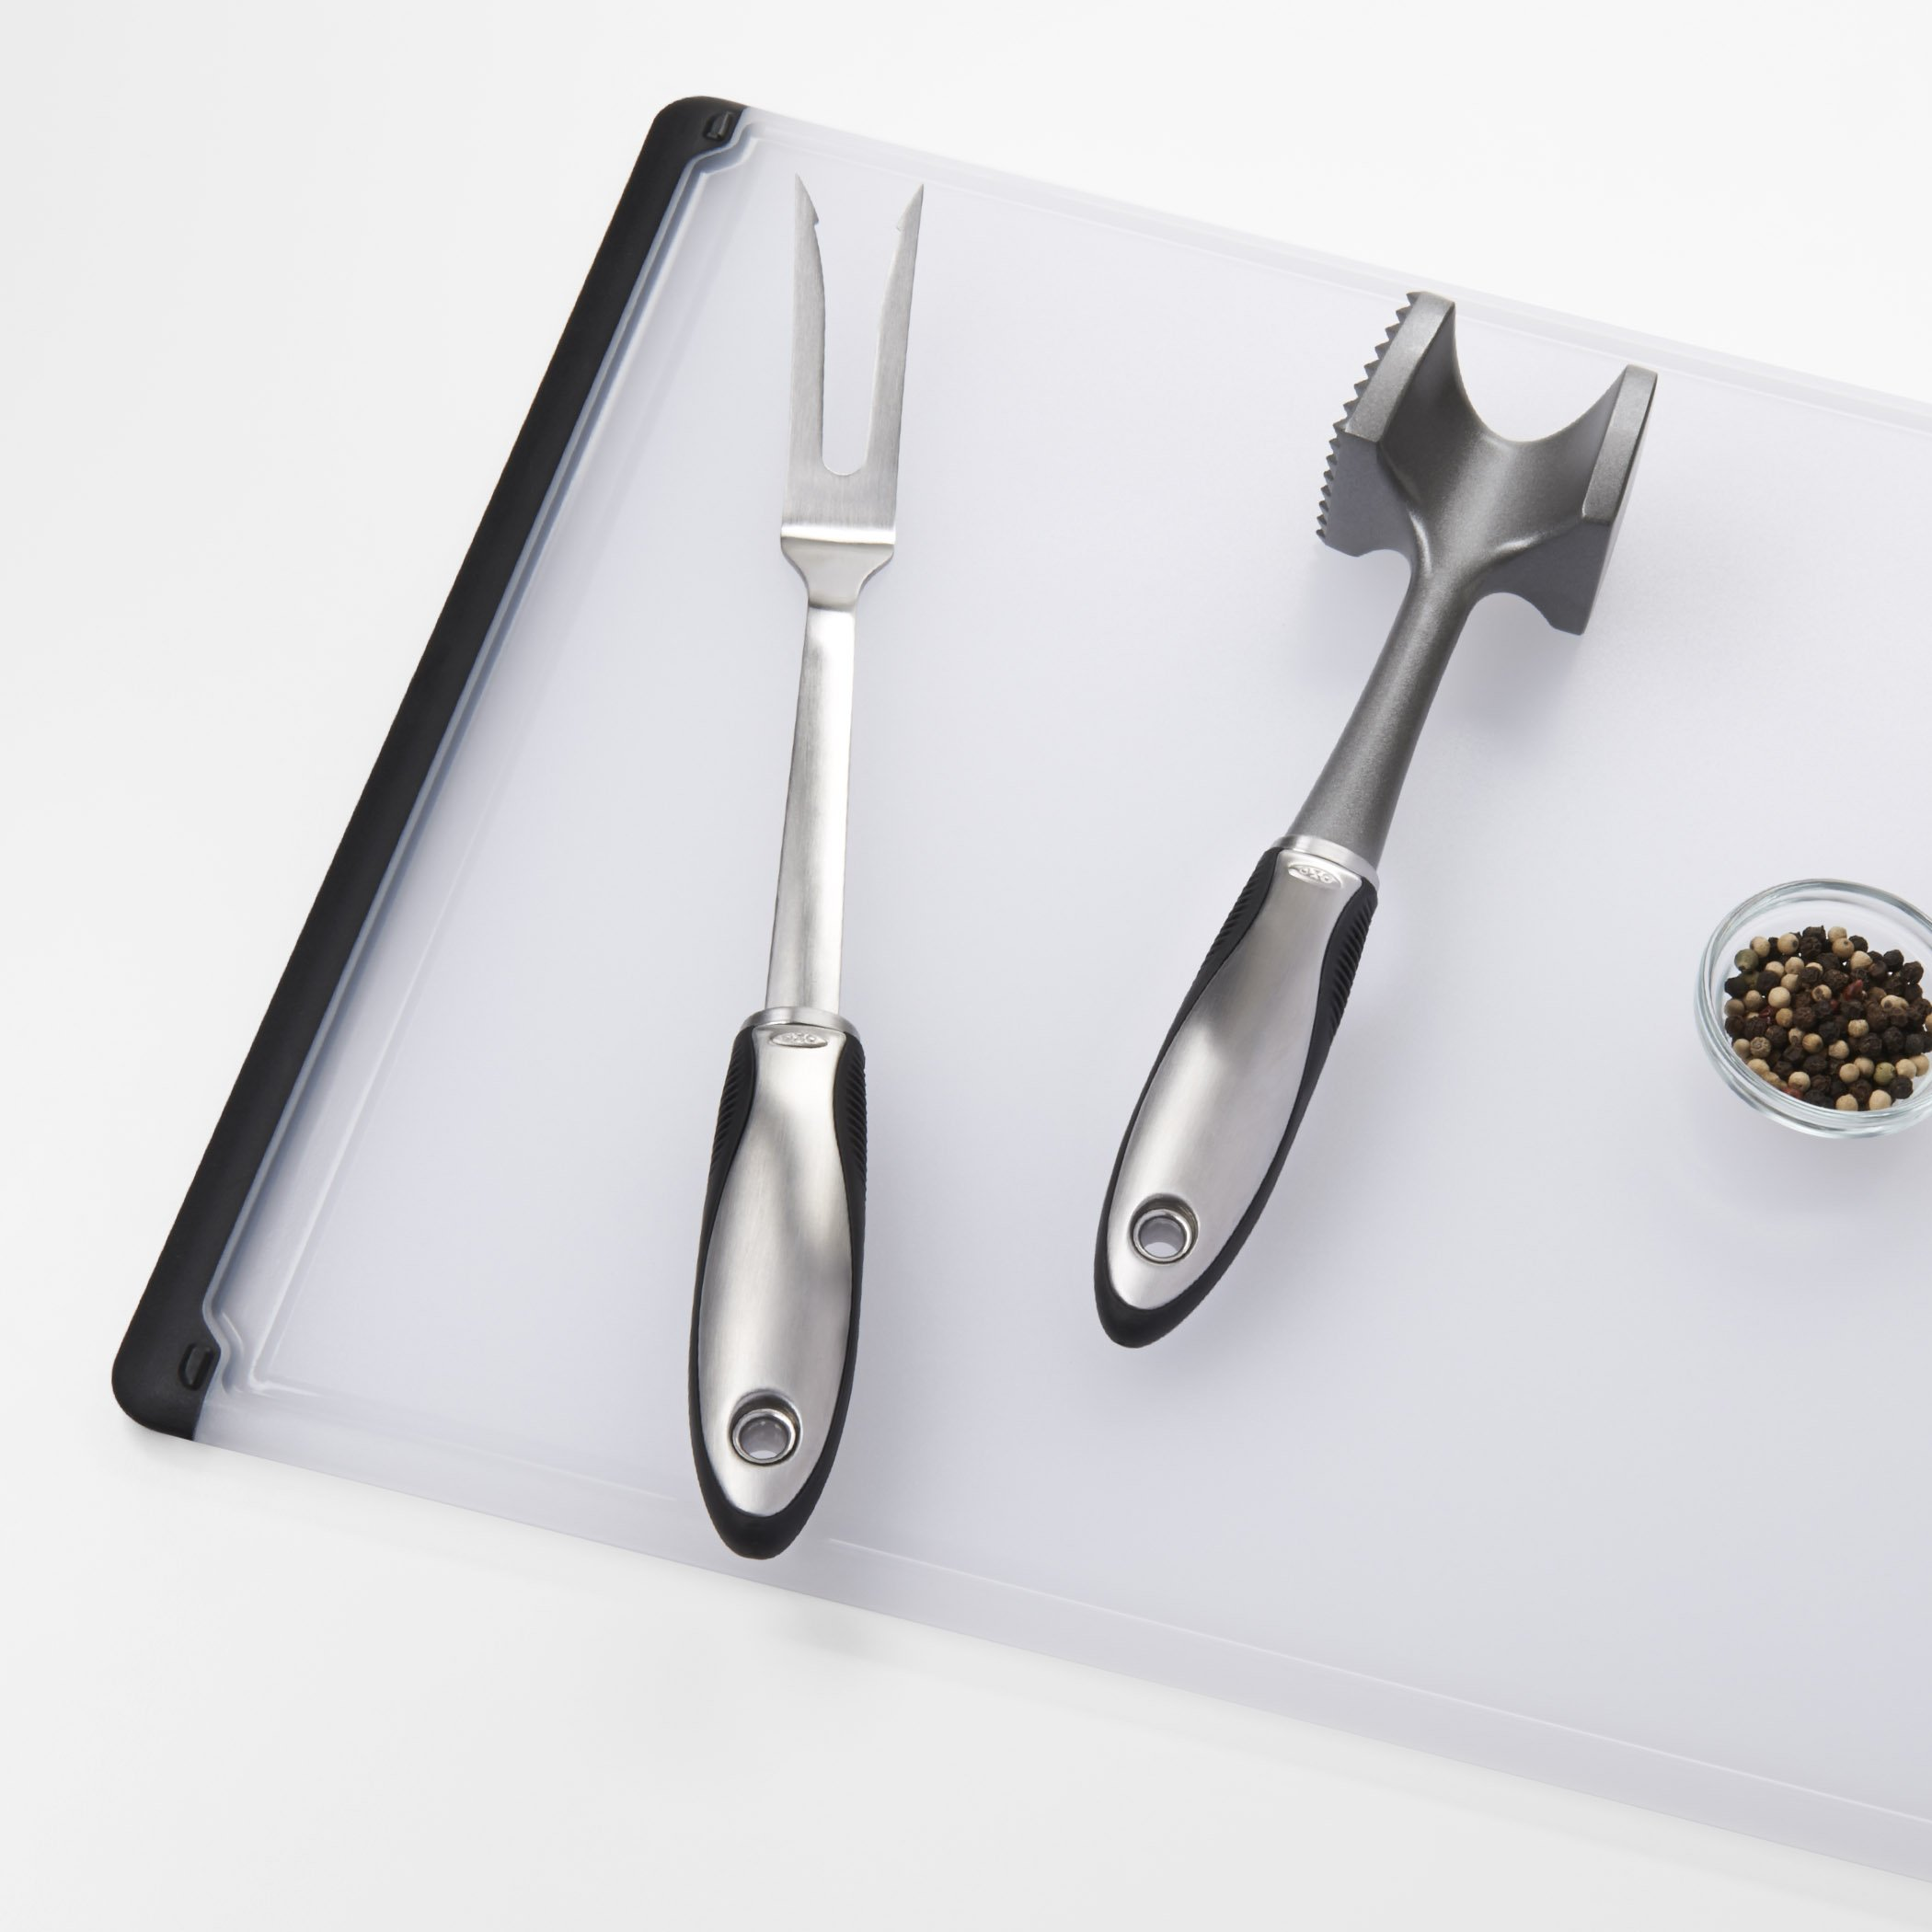 OXO SteeL Carving Fork by OXO